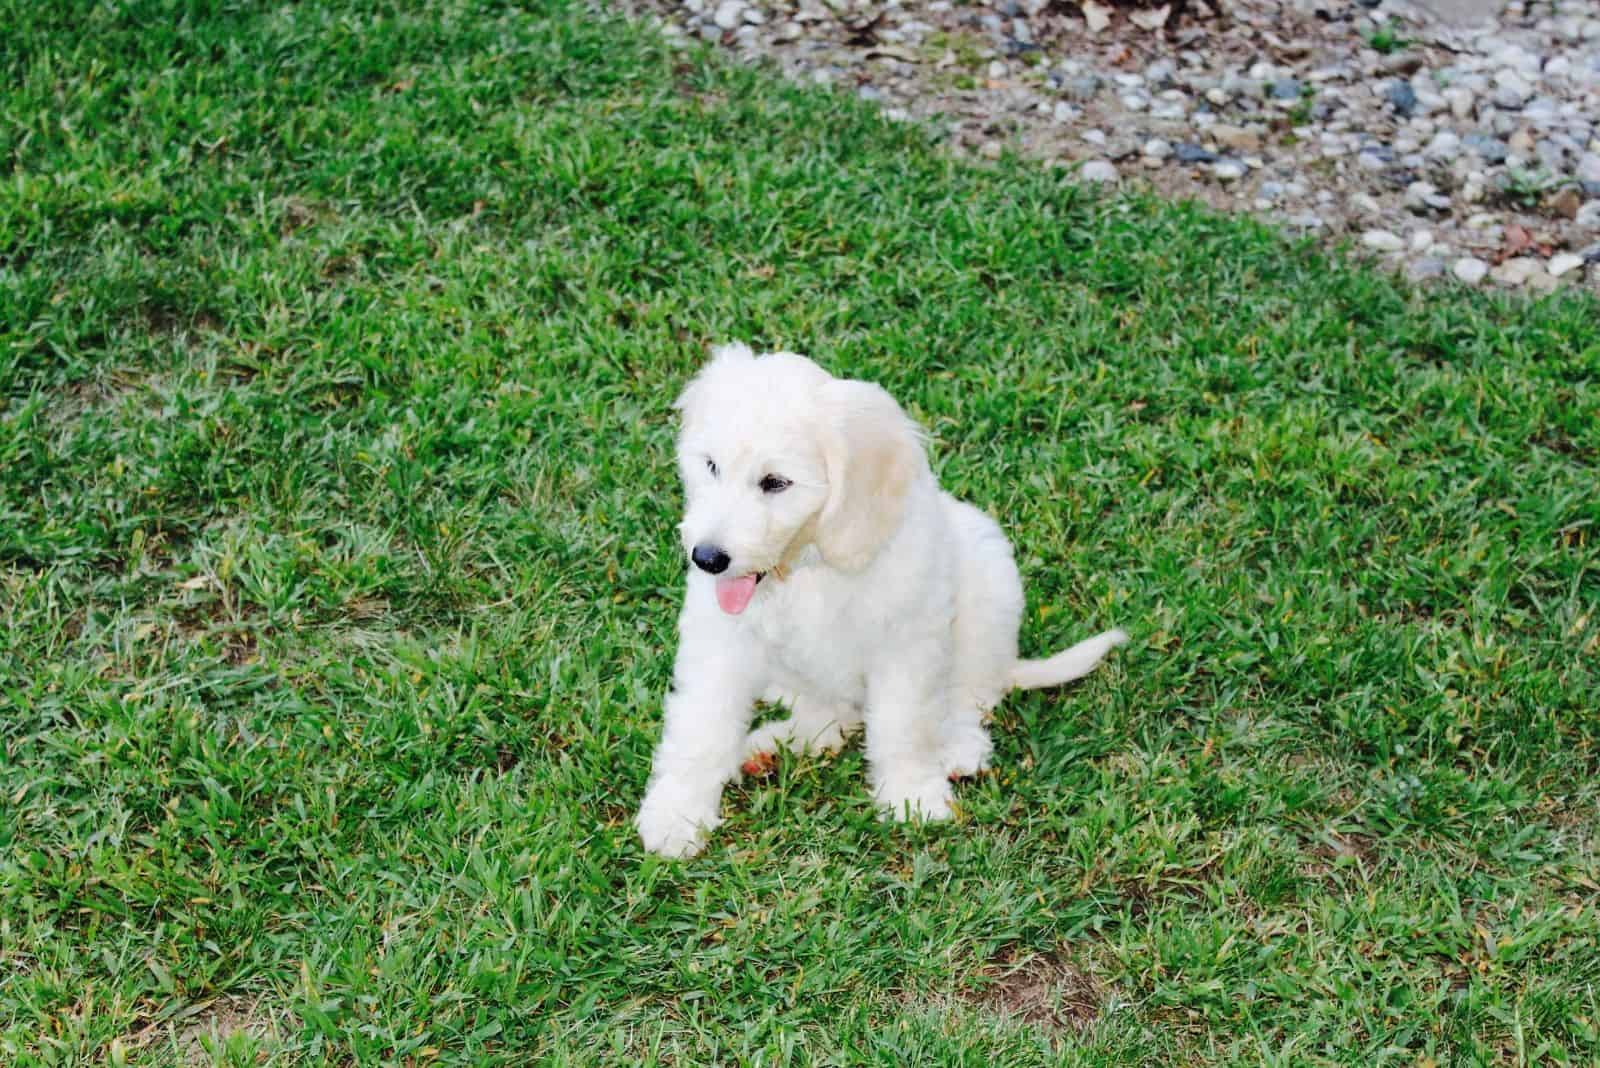 white f1 goldendoodle standing in the grass taken on high angle